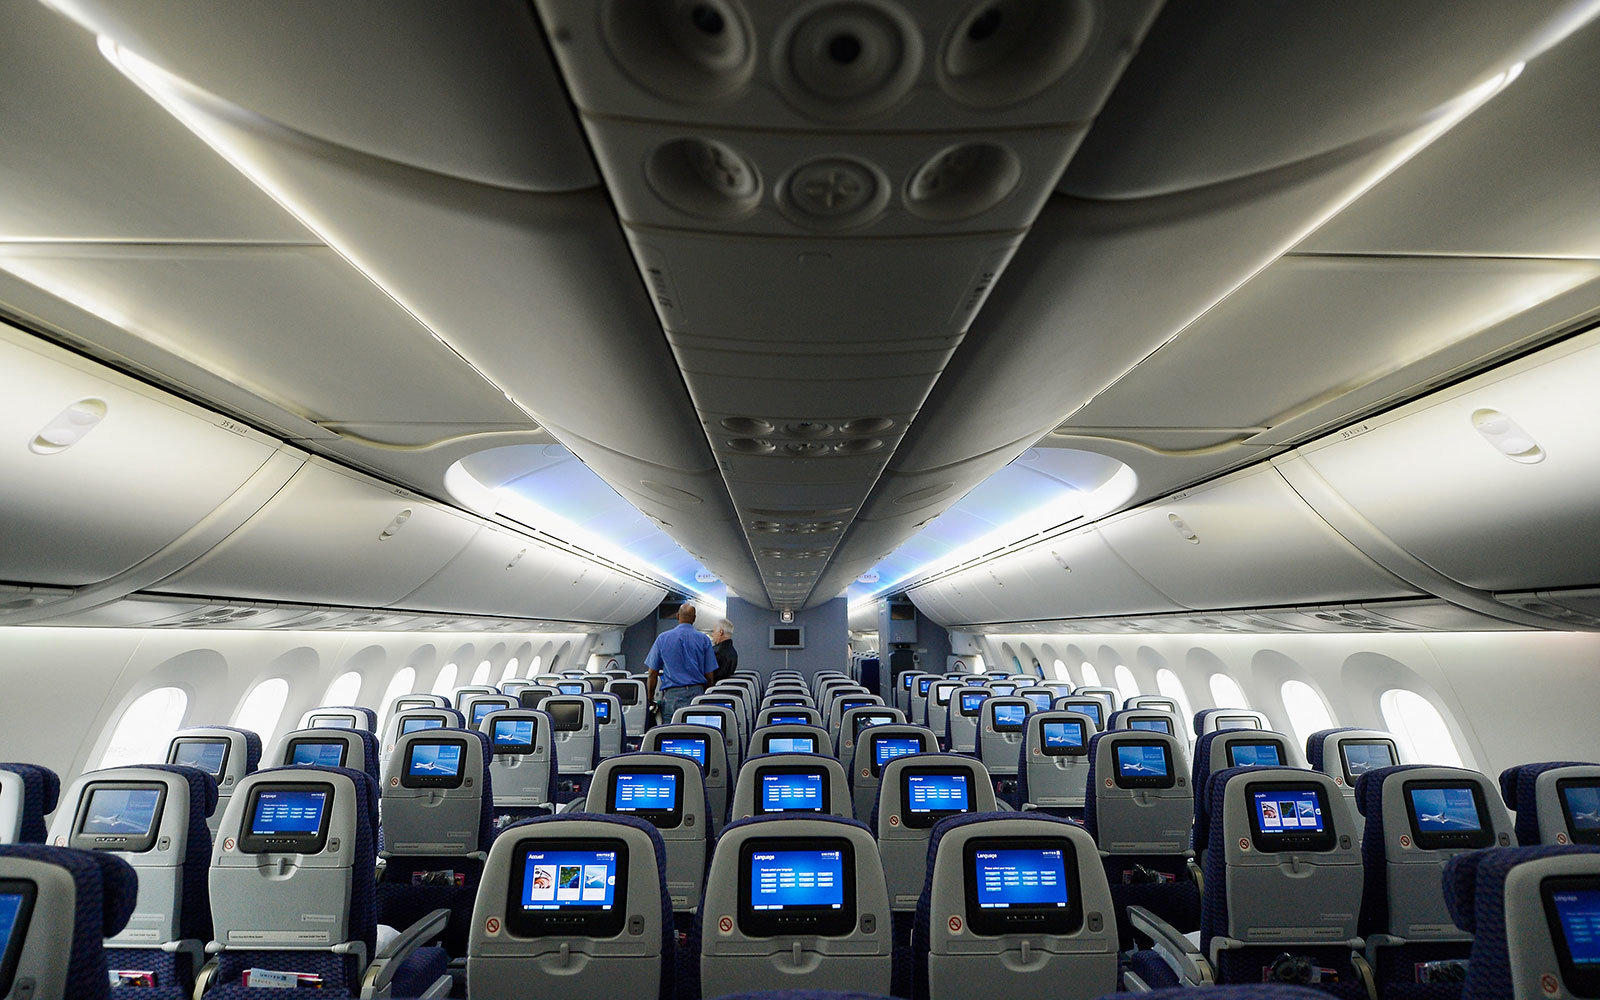 United Airliens Economy Class seats